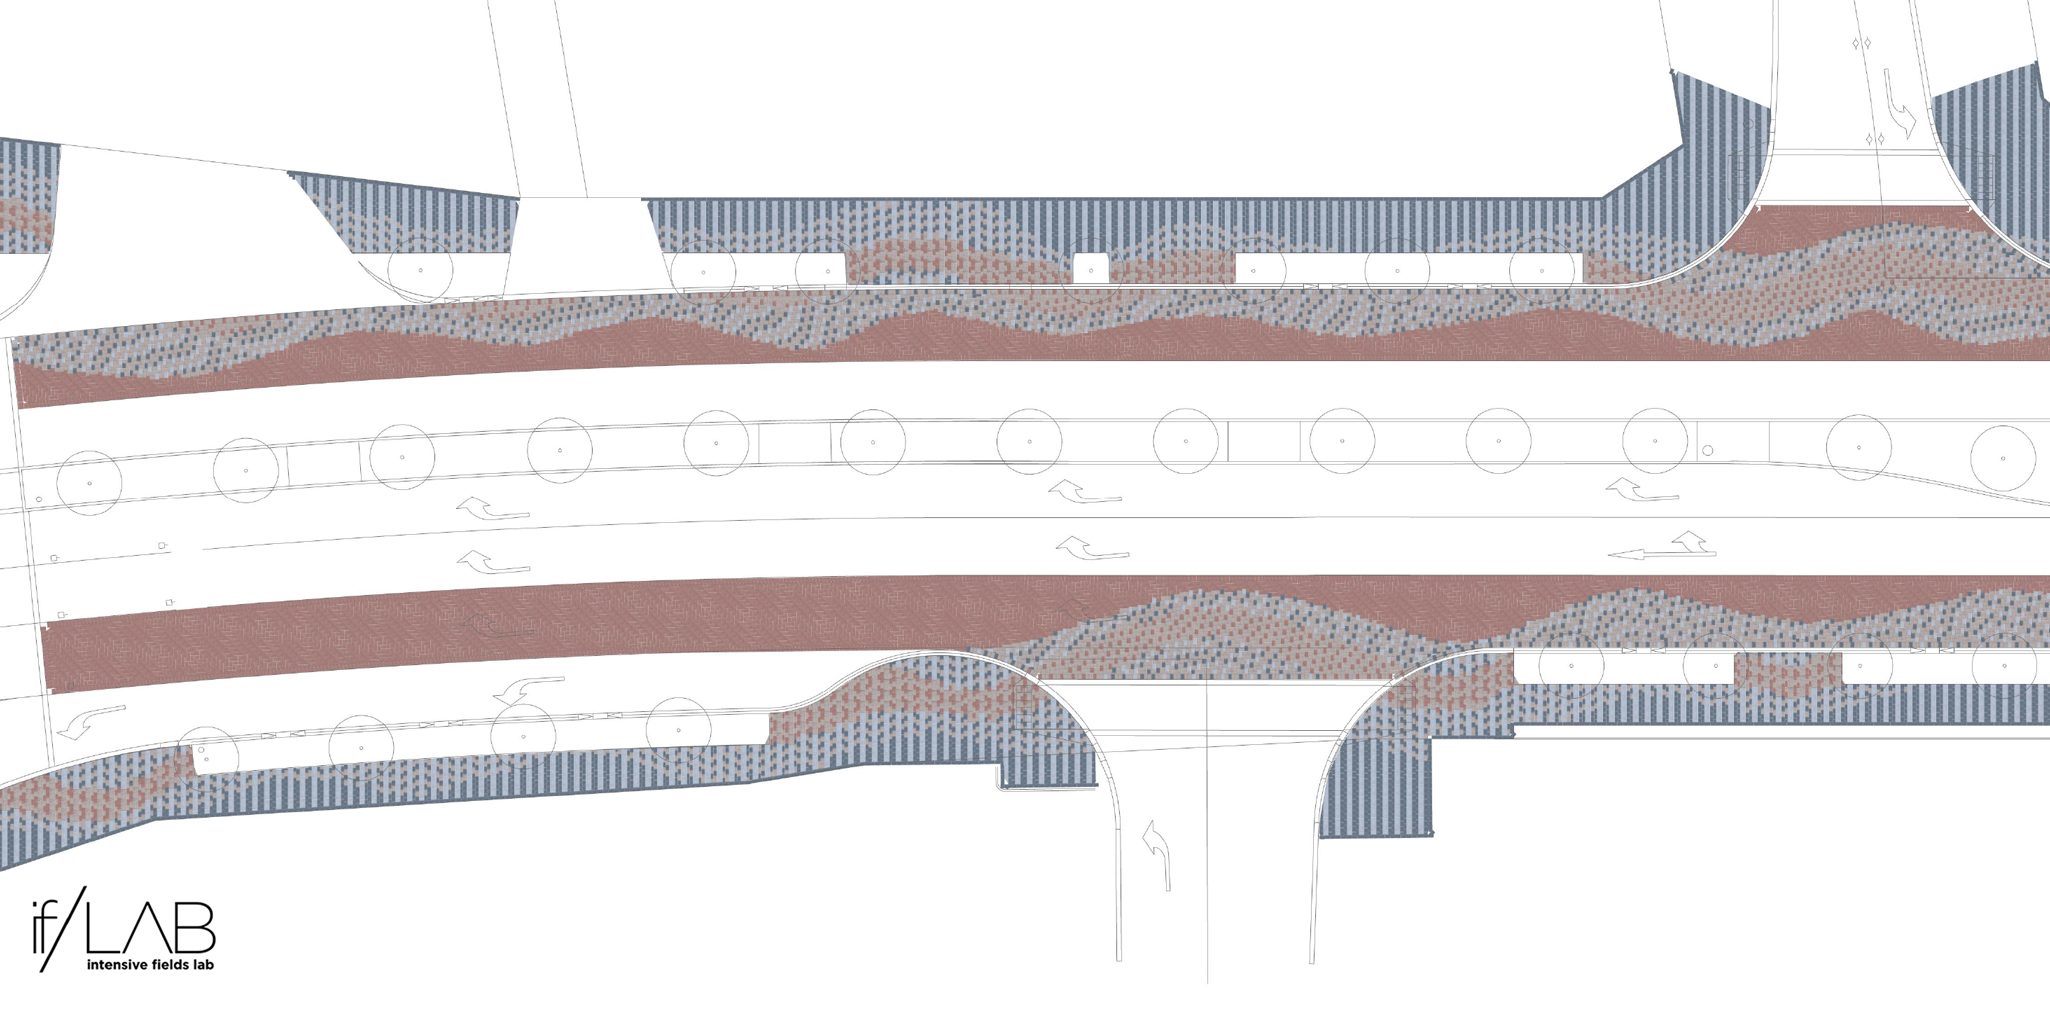 Detail Plan for Installation